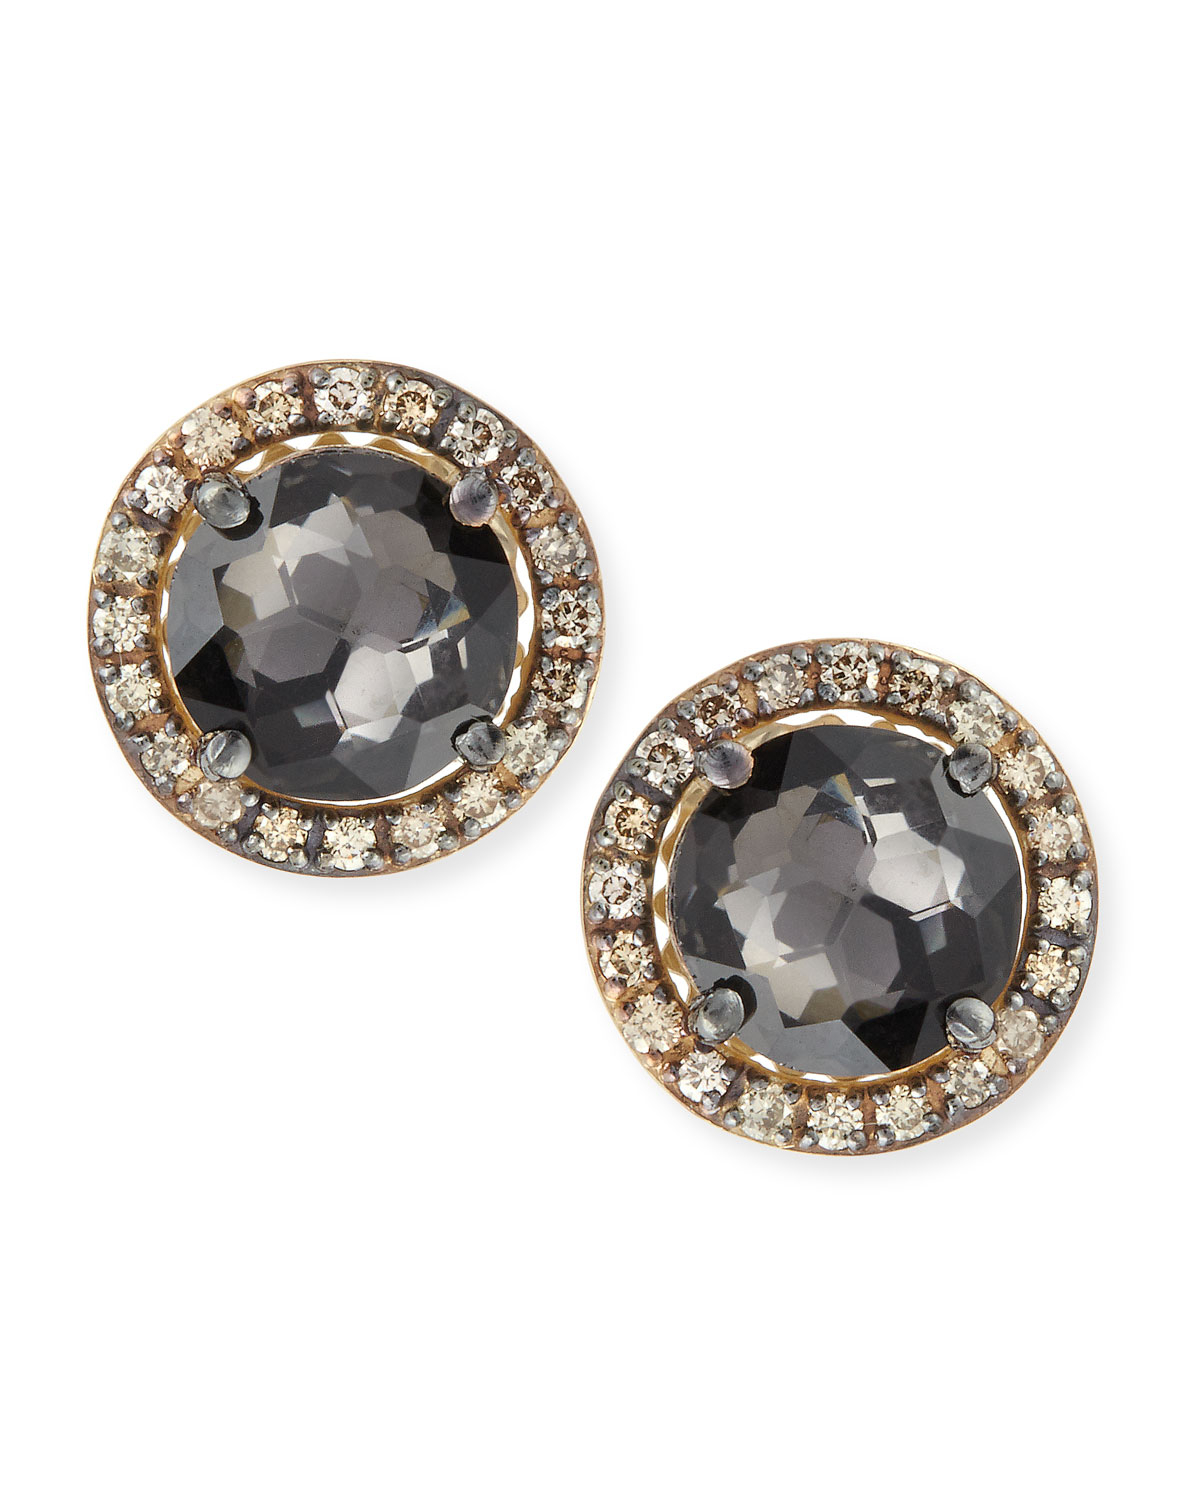 aa jewelry stud diam champagne aura champ spartan shop products studs anvil diamond stone